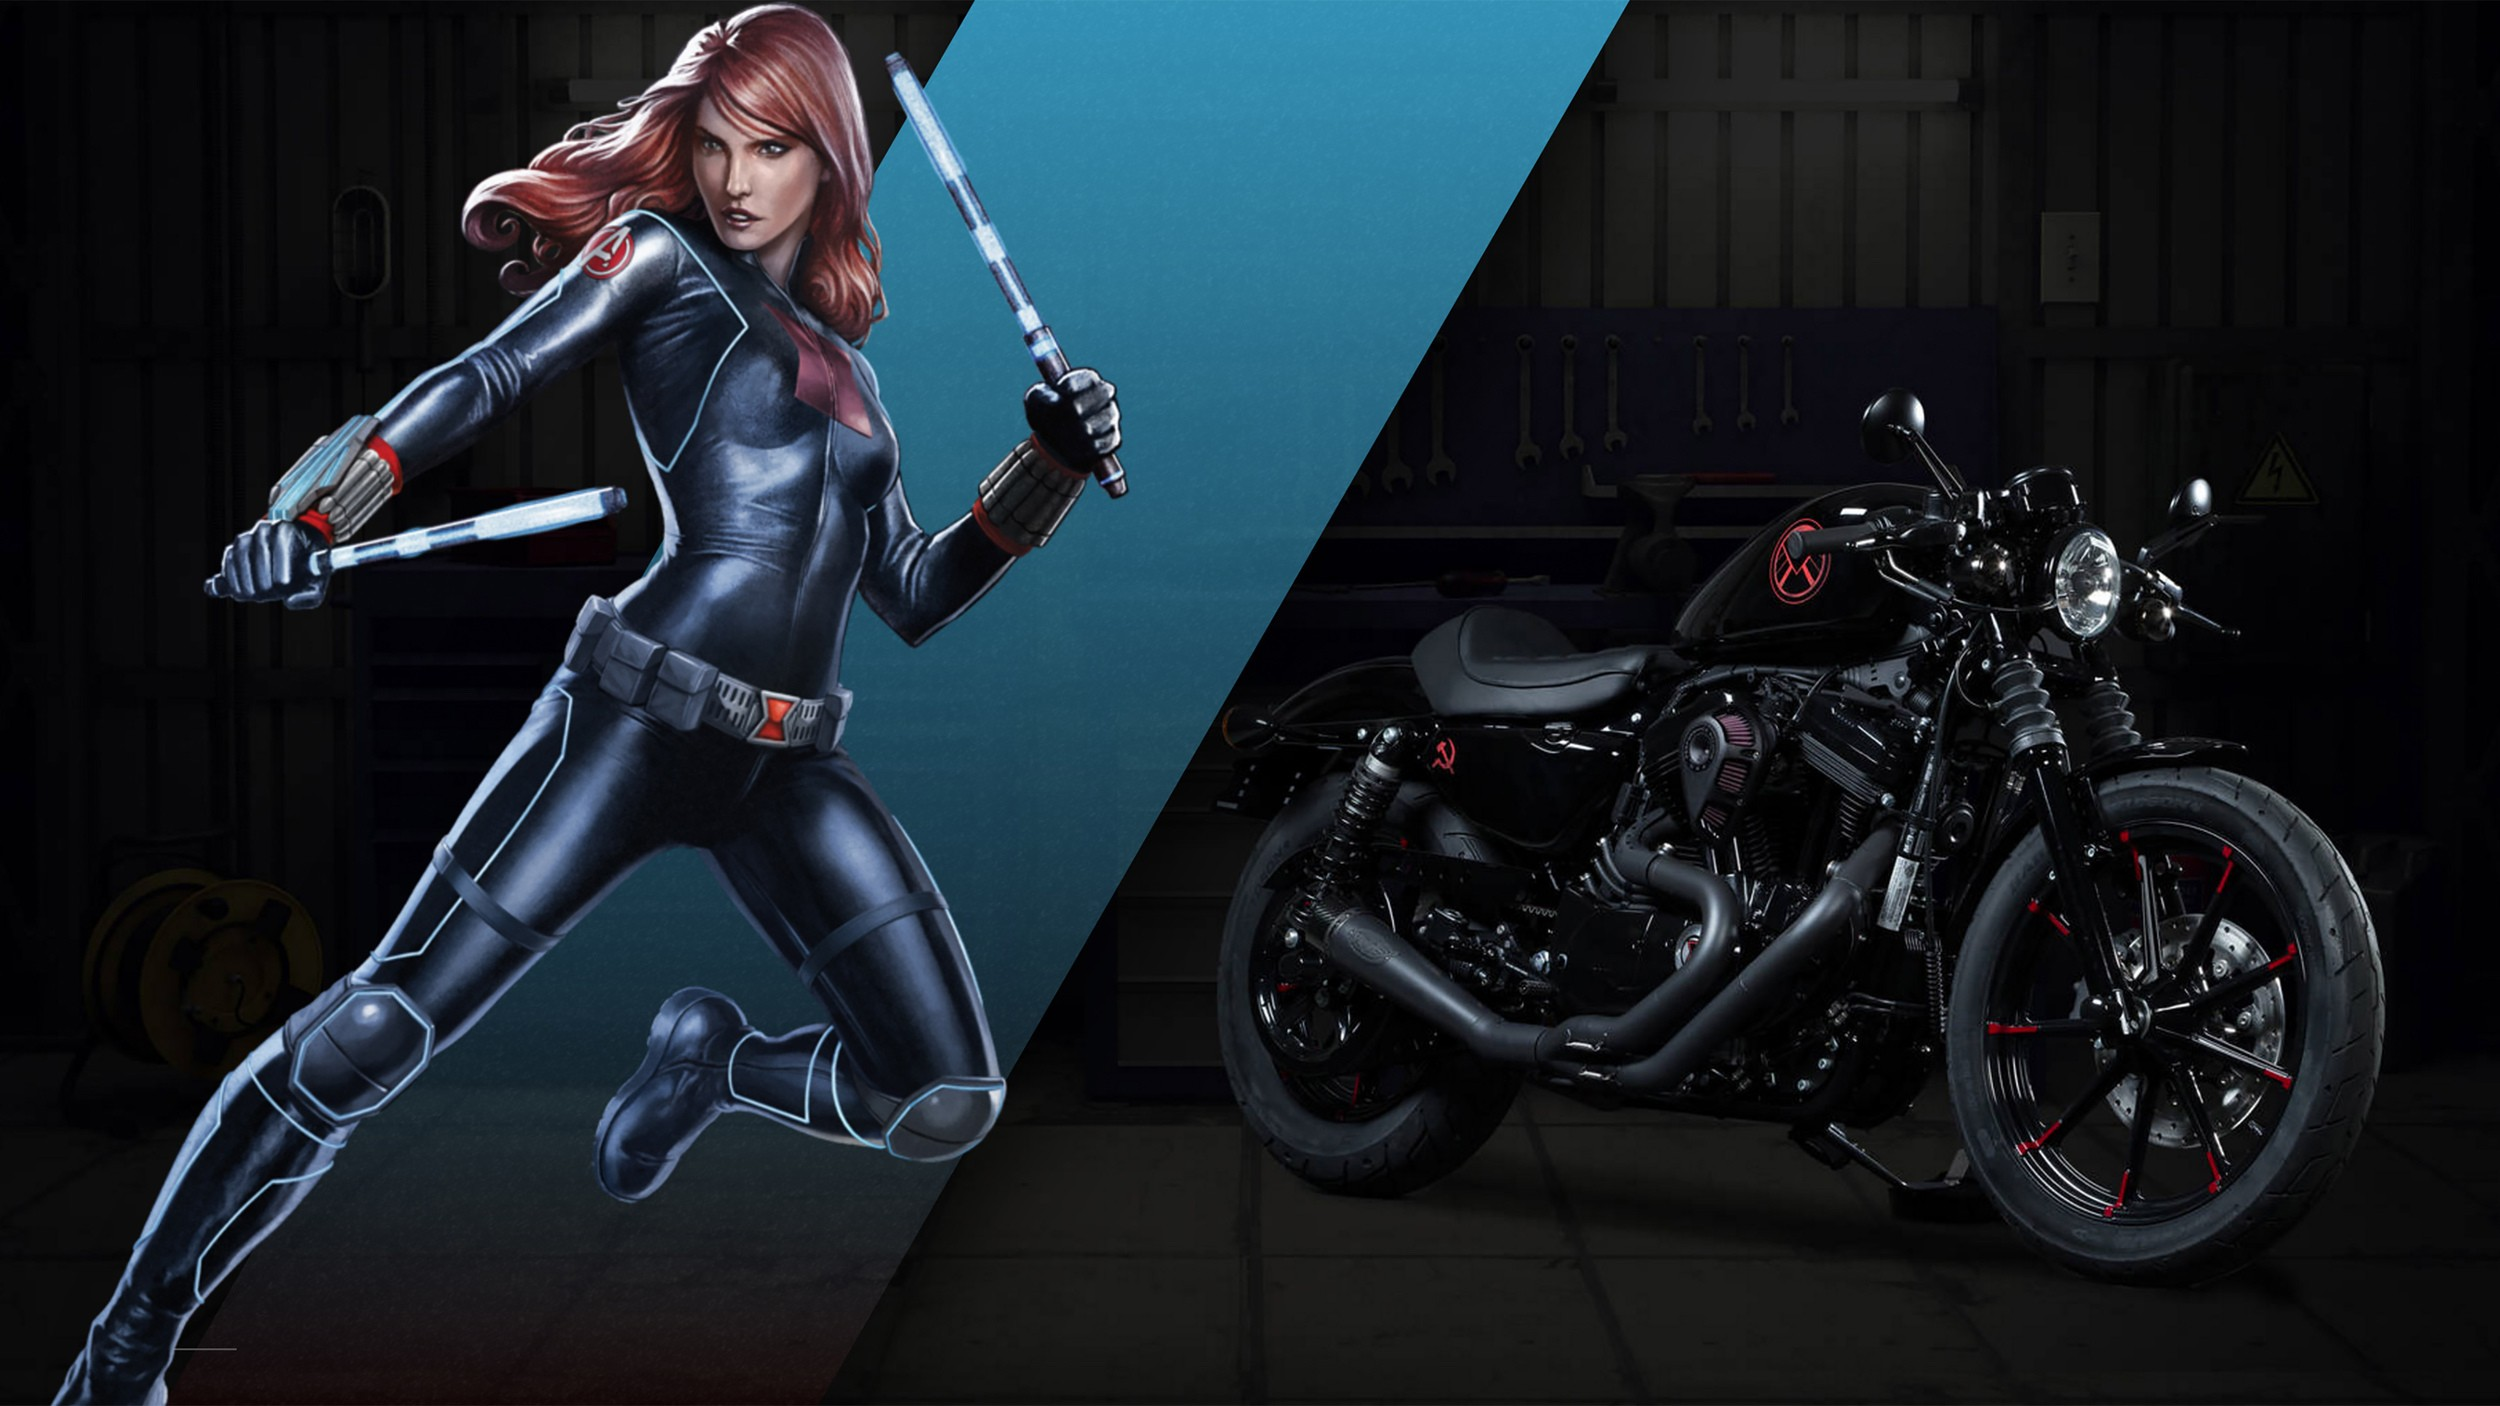 Marvel Superhero Harley Davidson Bikes Surface In The Land